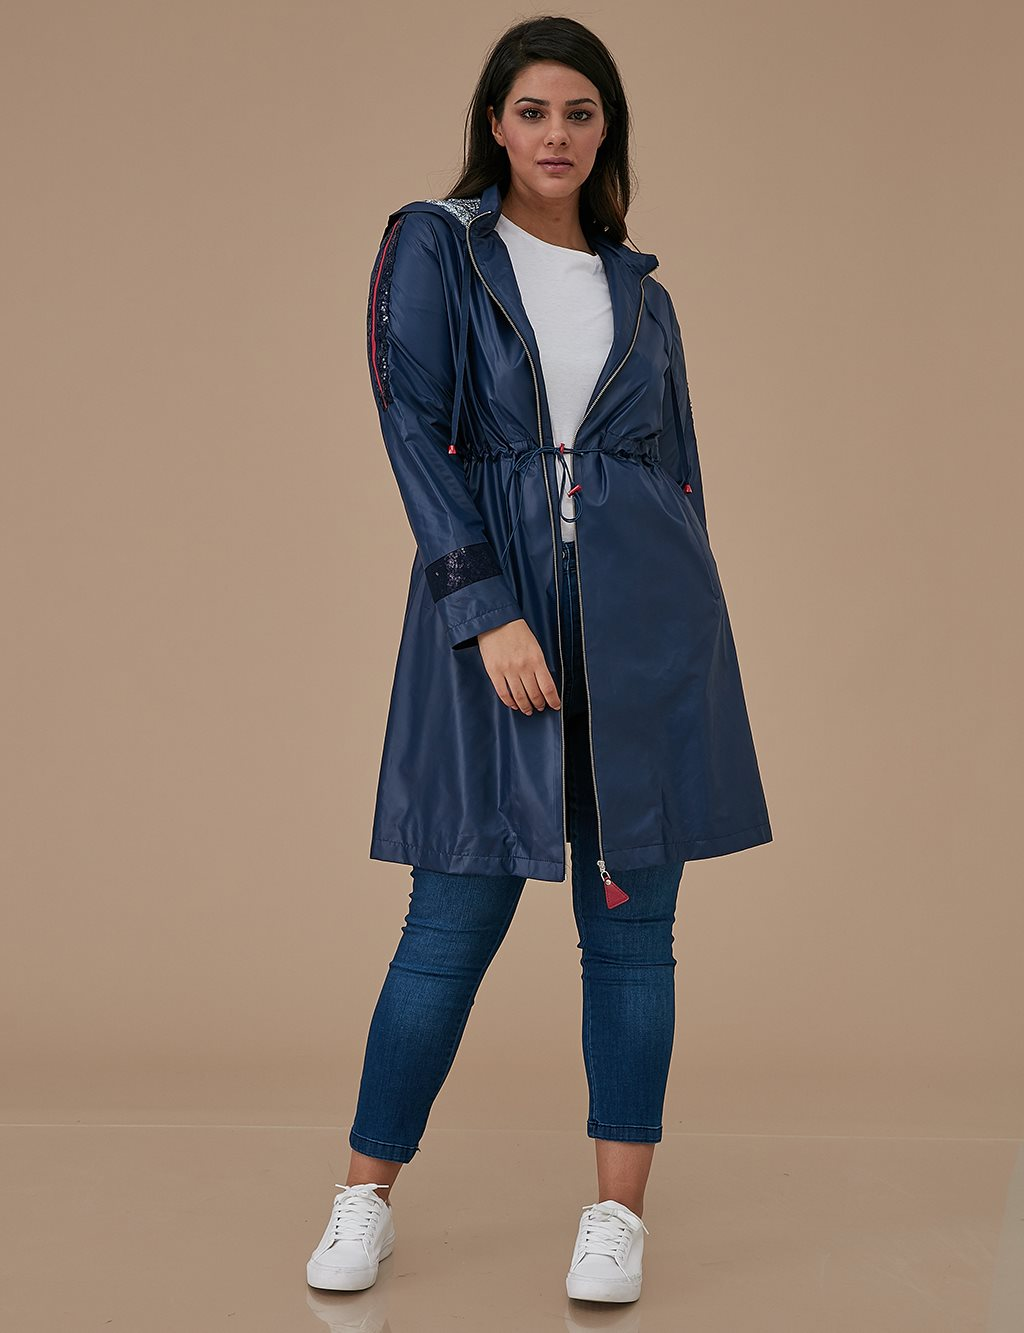 Ruched Coat A9 14057 Navy